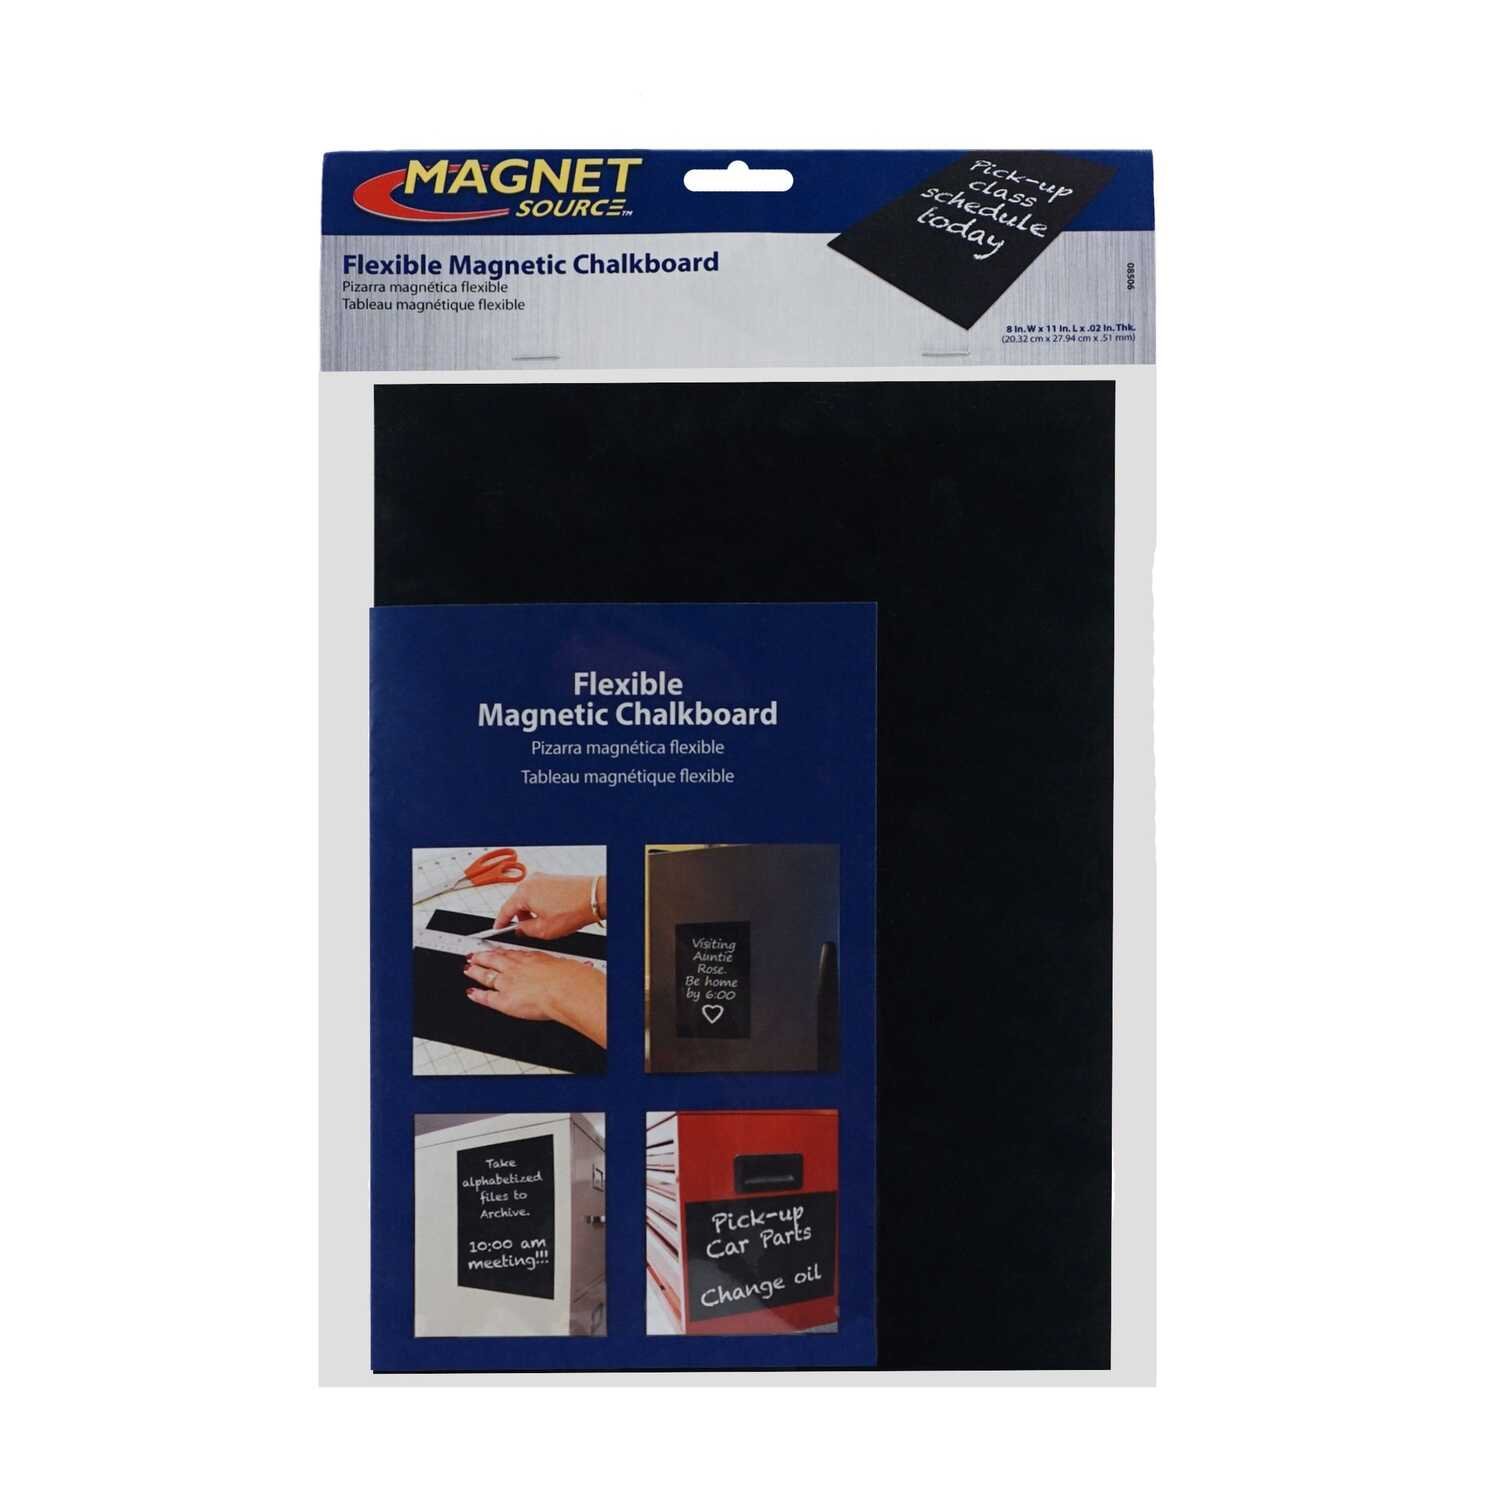 Master Magentics  11 in. Ferrite Powder/Rubber Polymer Resin  Magnetic Chalkboard  Black  1 pc. 0.6